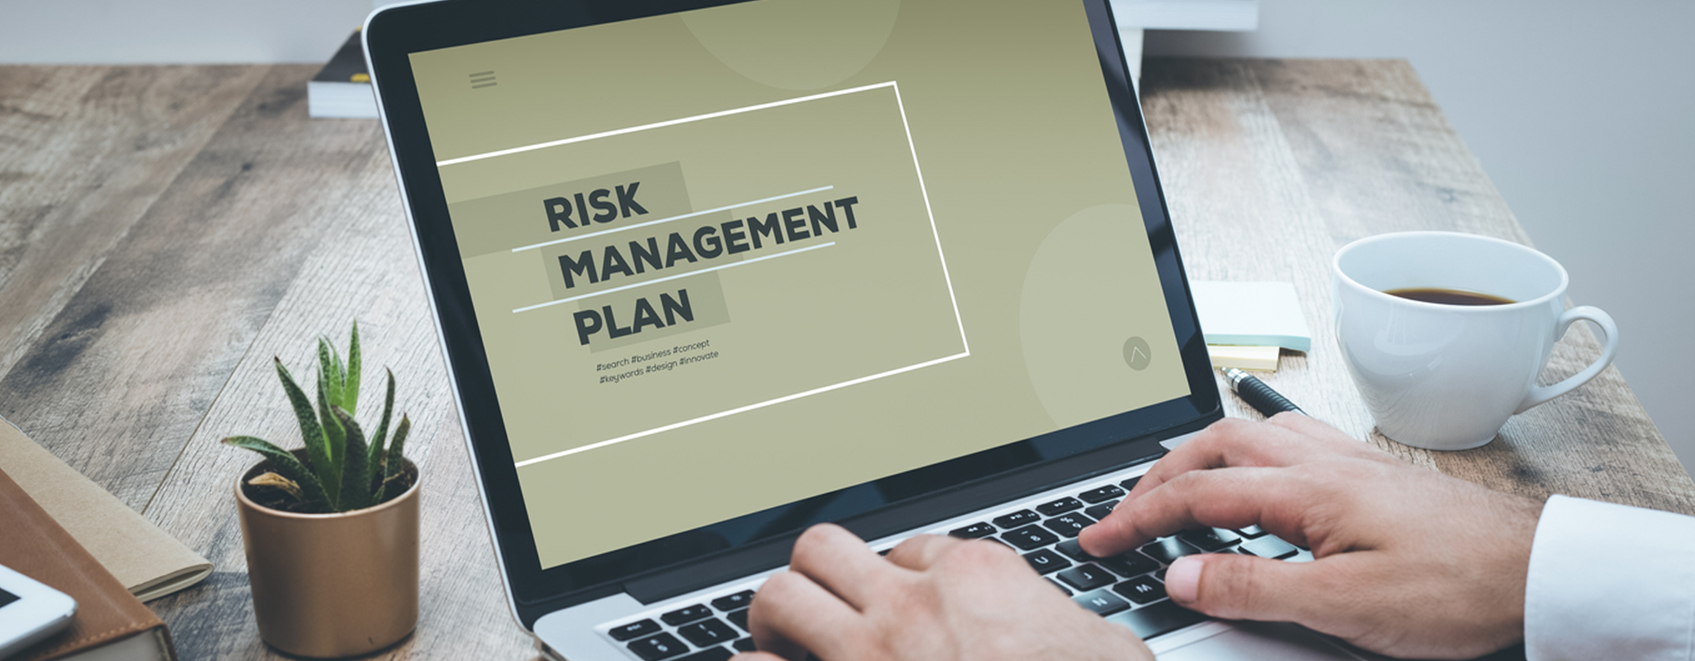 person typing at on laptop, with screen that says Risk Management Plan